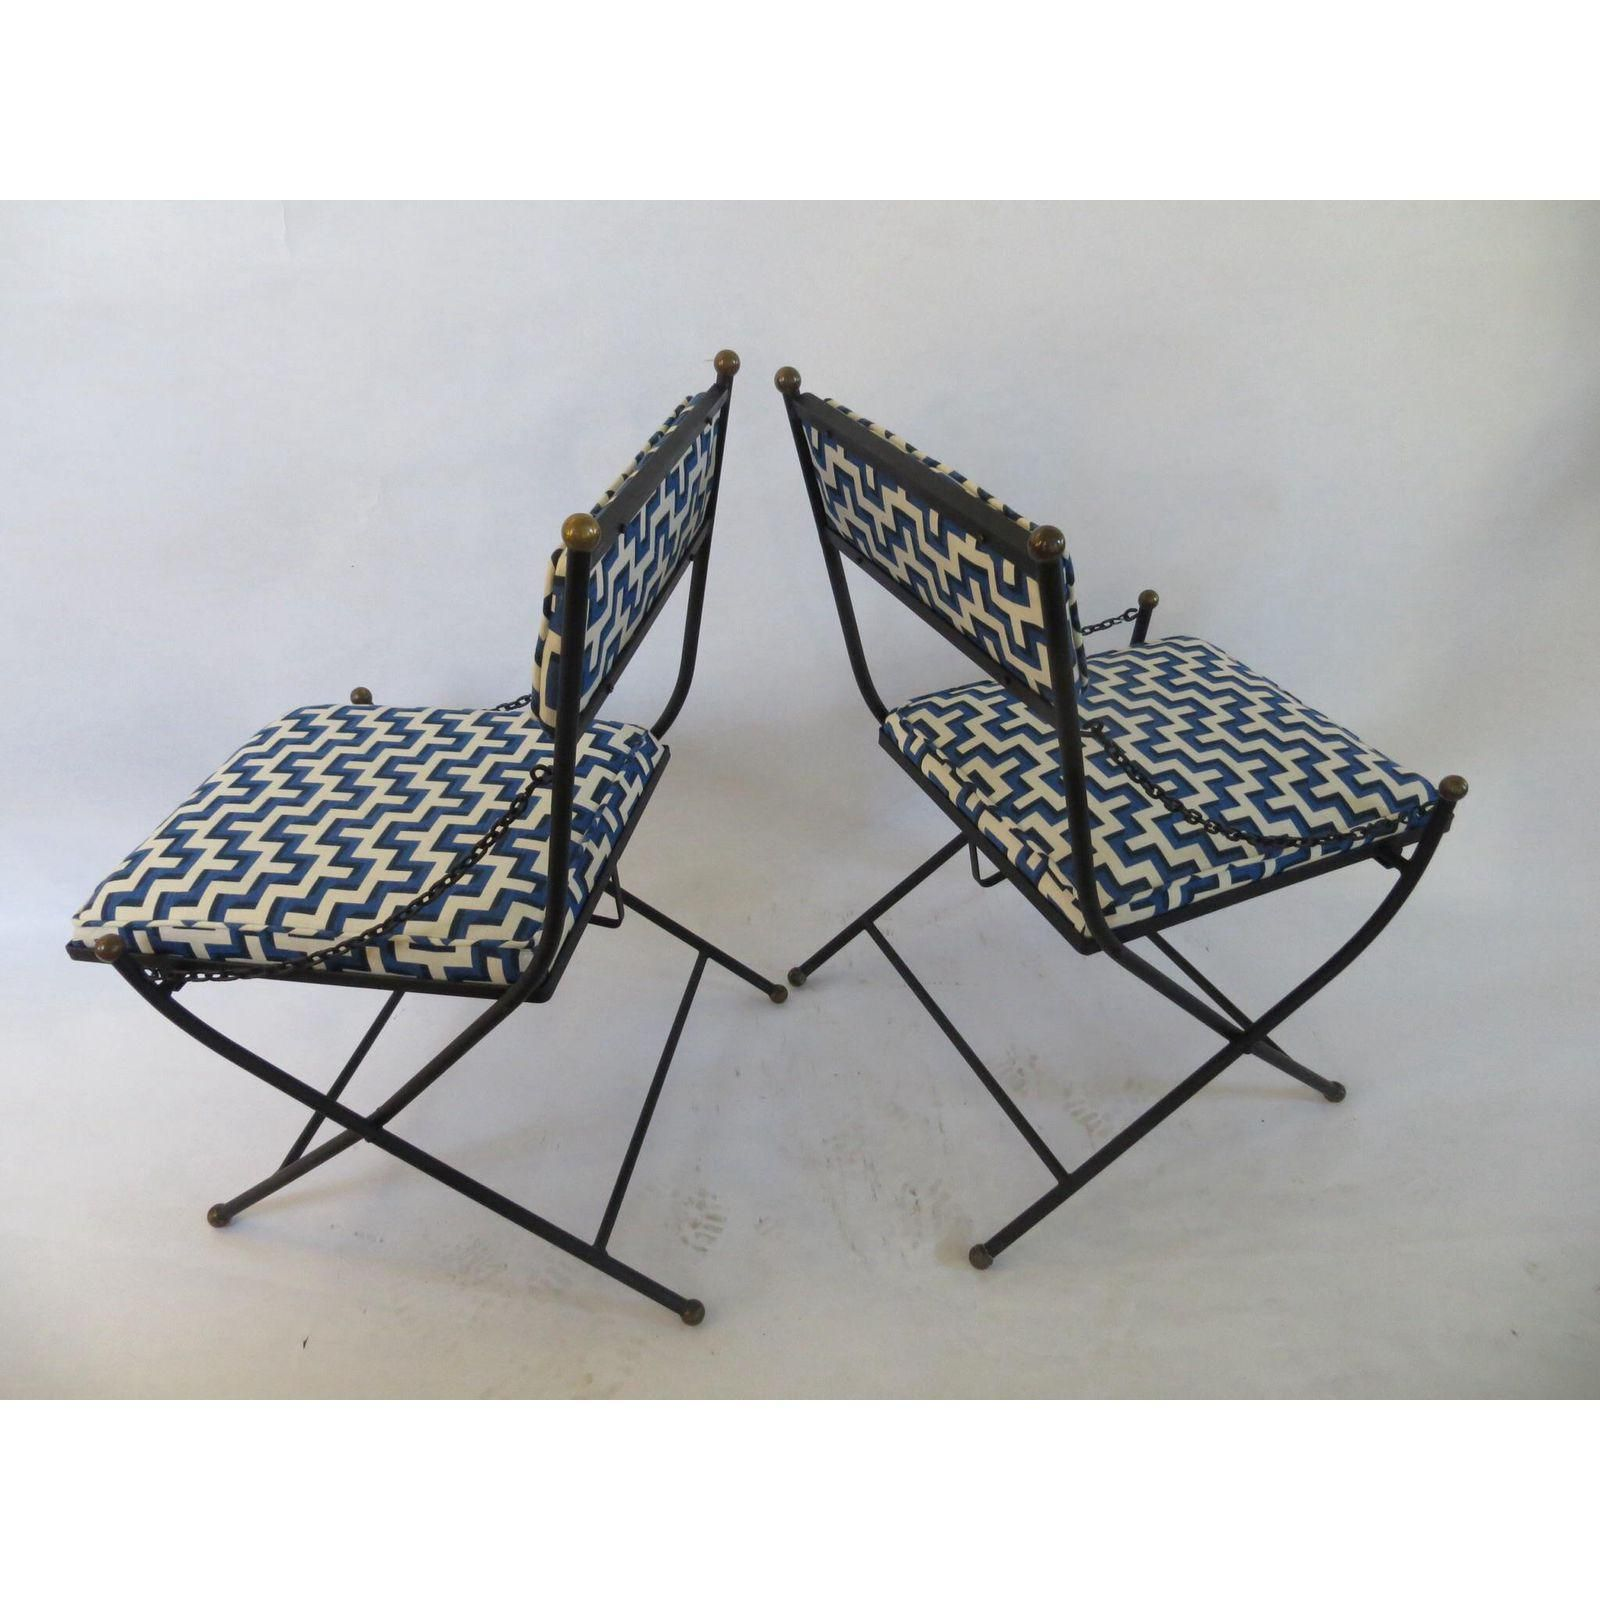 marvelous Folding Wrought Iron Chairs Part - 9: Vintage Folding Wrought-Iron Chairs - a Pair